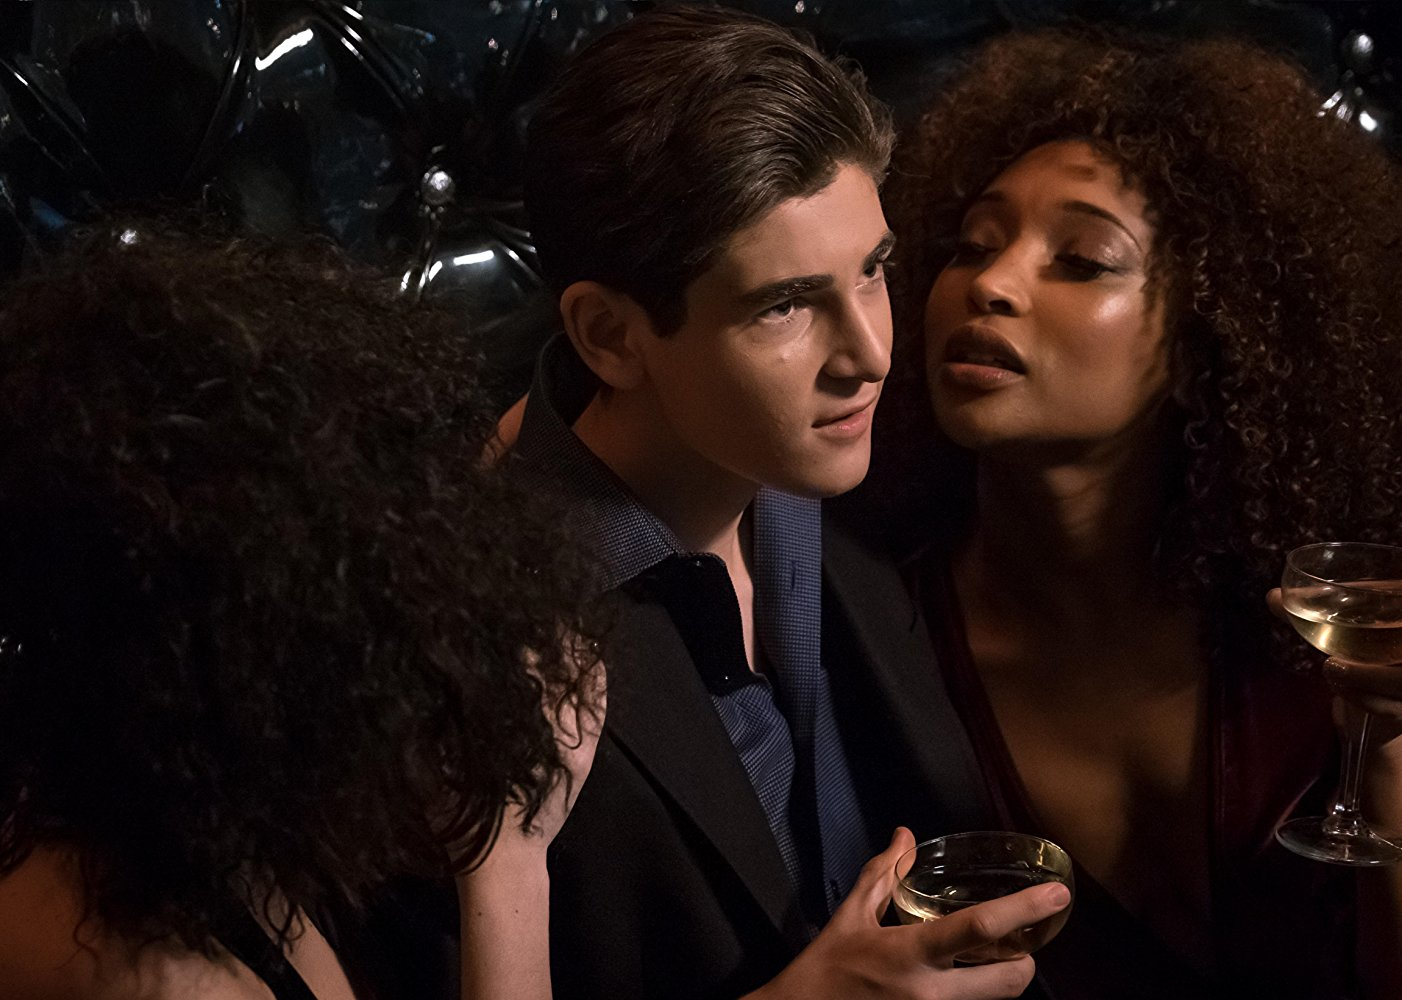 An underage Bruce Wayne is surrounded by girls and drinking at the Siren's club.